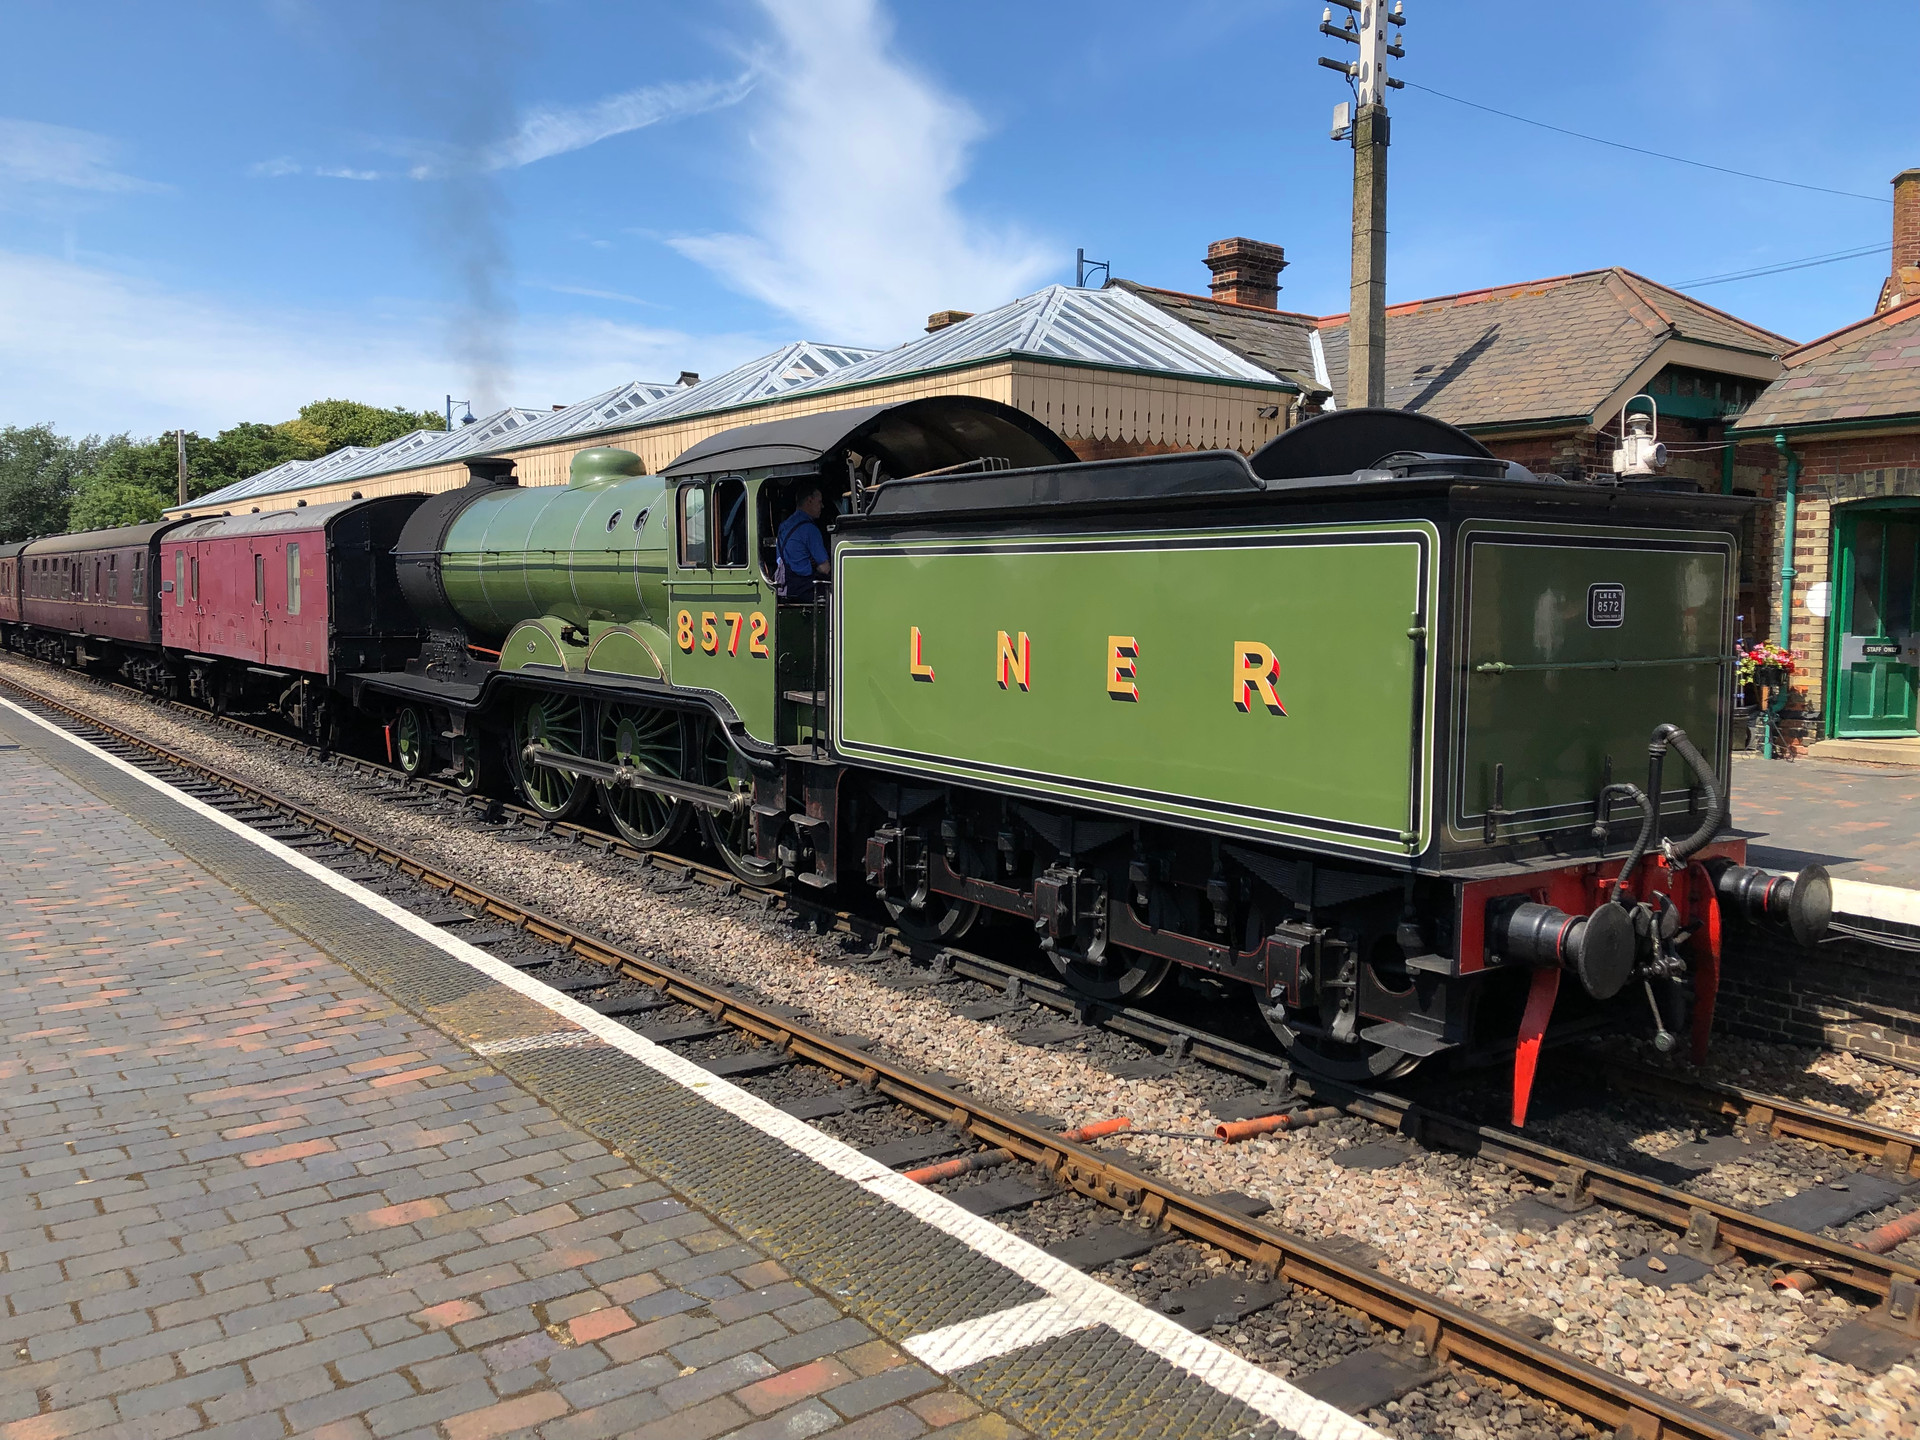 NORTH NORFOLK RAILWAY 8572